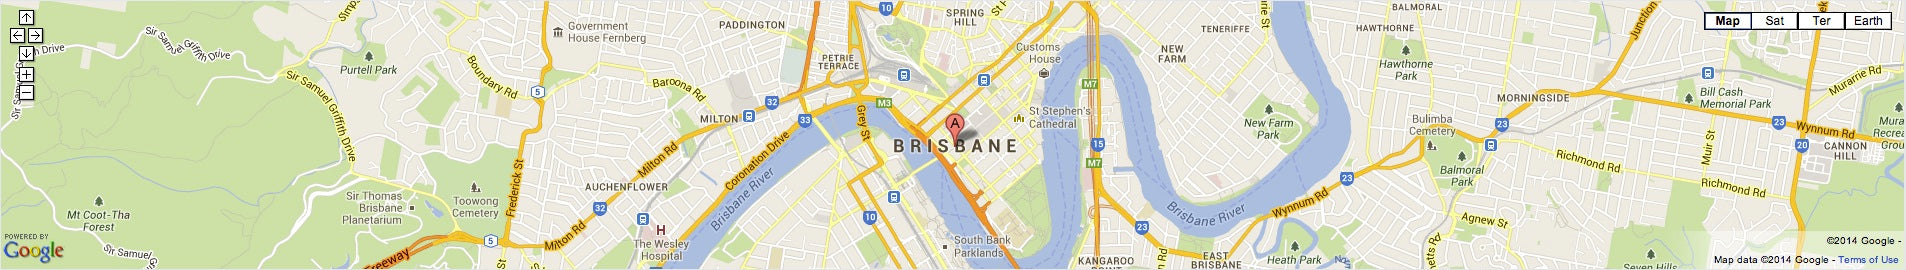 Brisbane information security